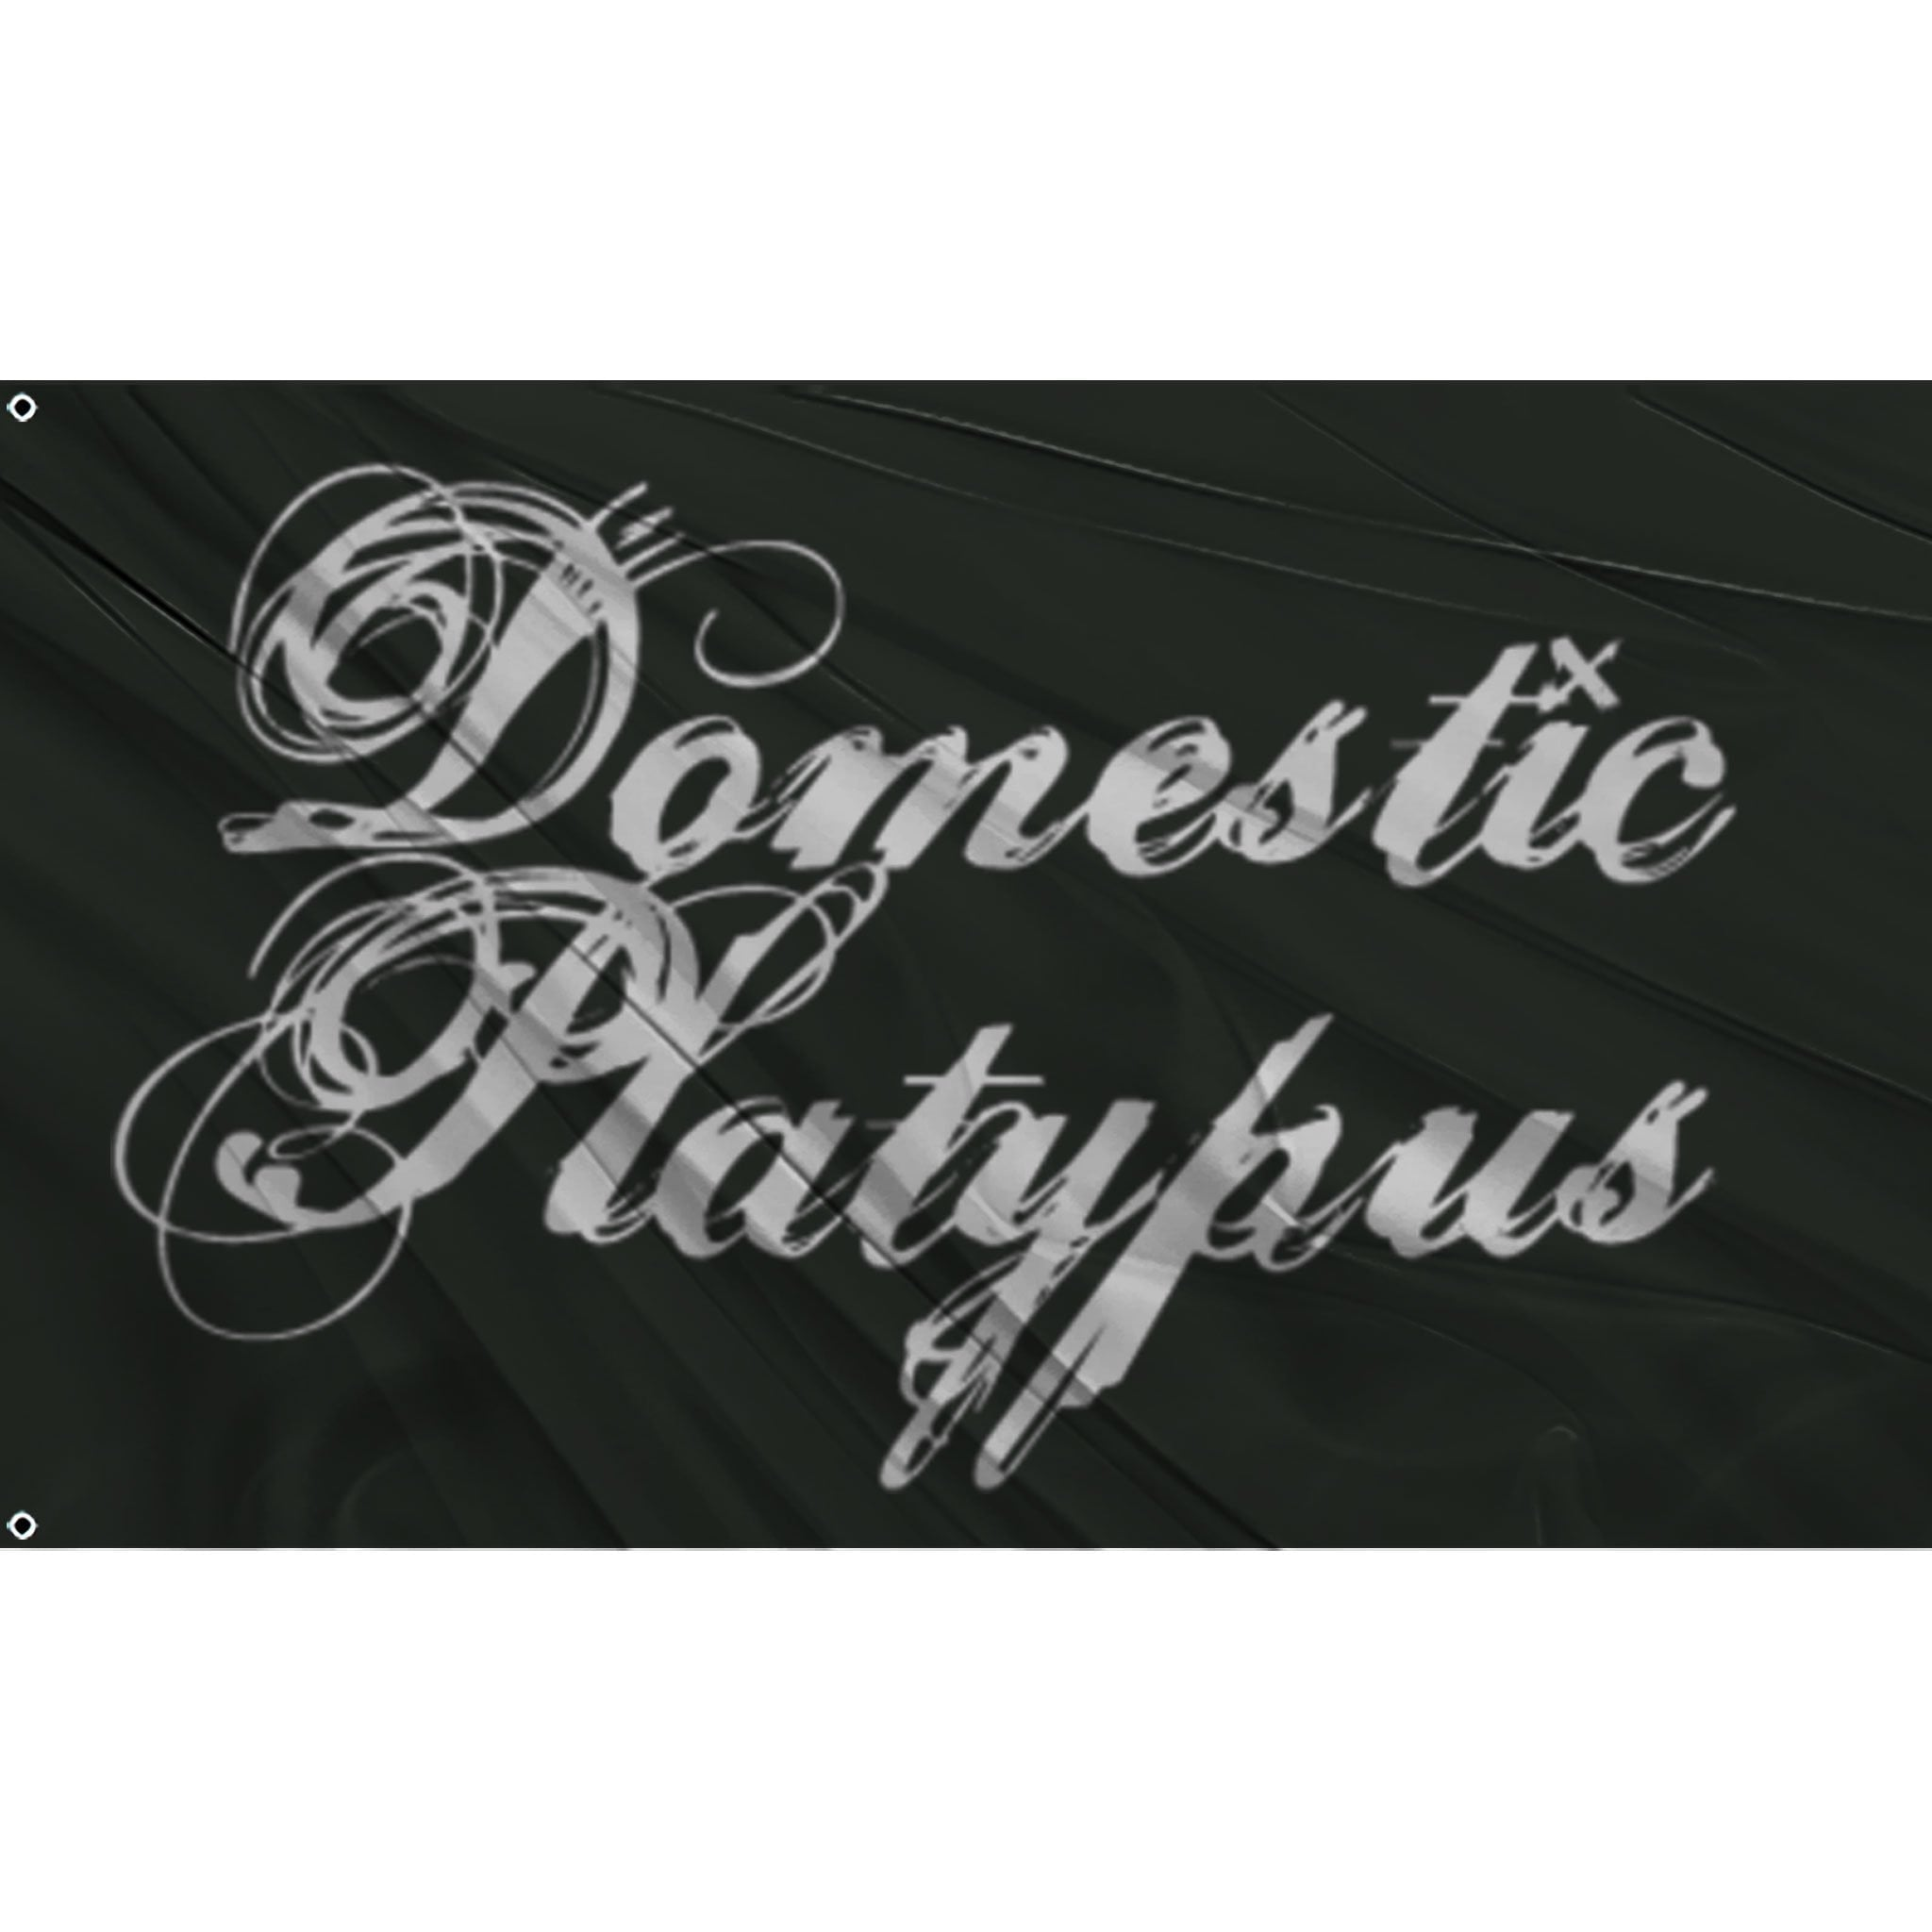 Custom Flag - Domestic Platypus